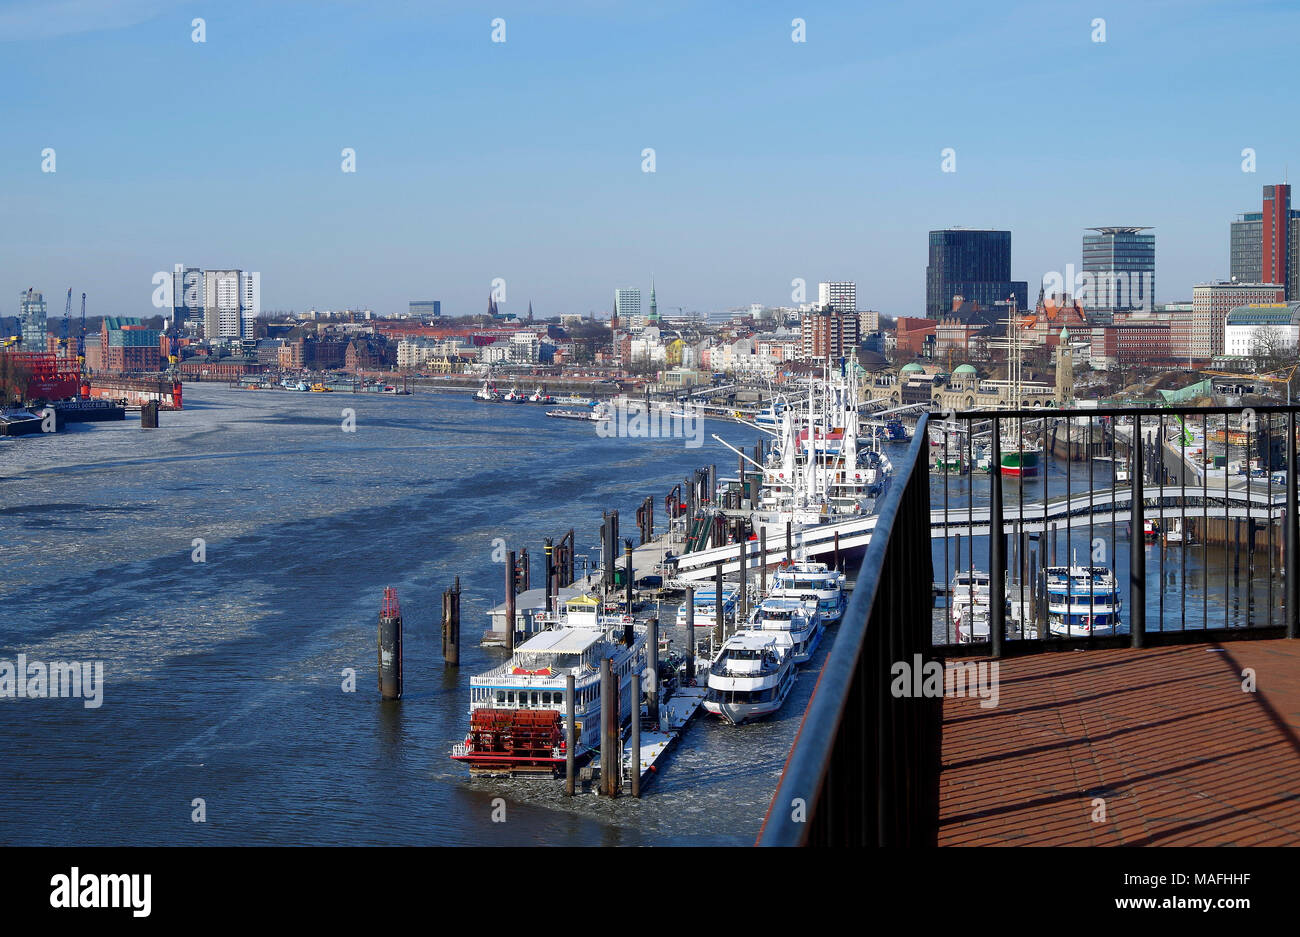 View of the north bank of the Elbe from the viewing deck of the Elbphilharmonie, now mostly used for ferries and citytour boats - Stock Image